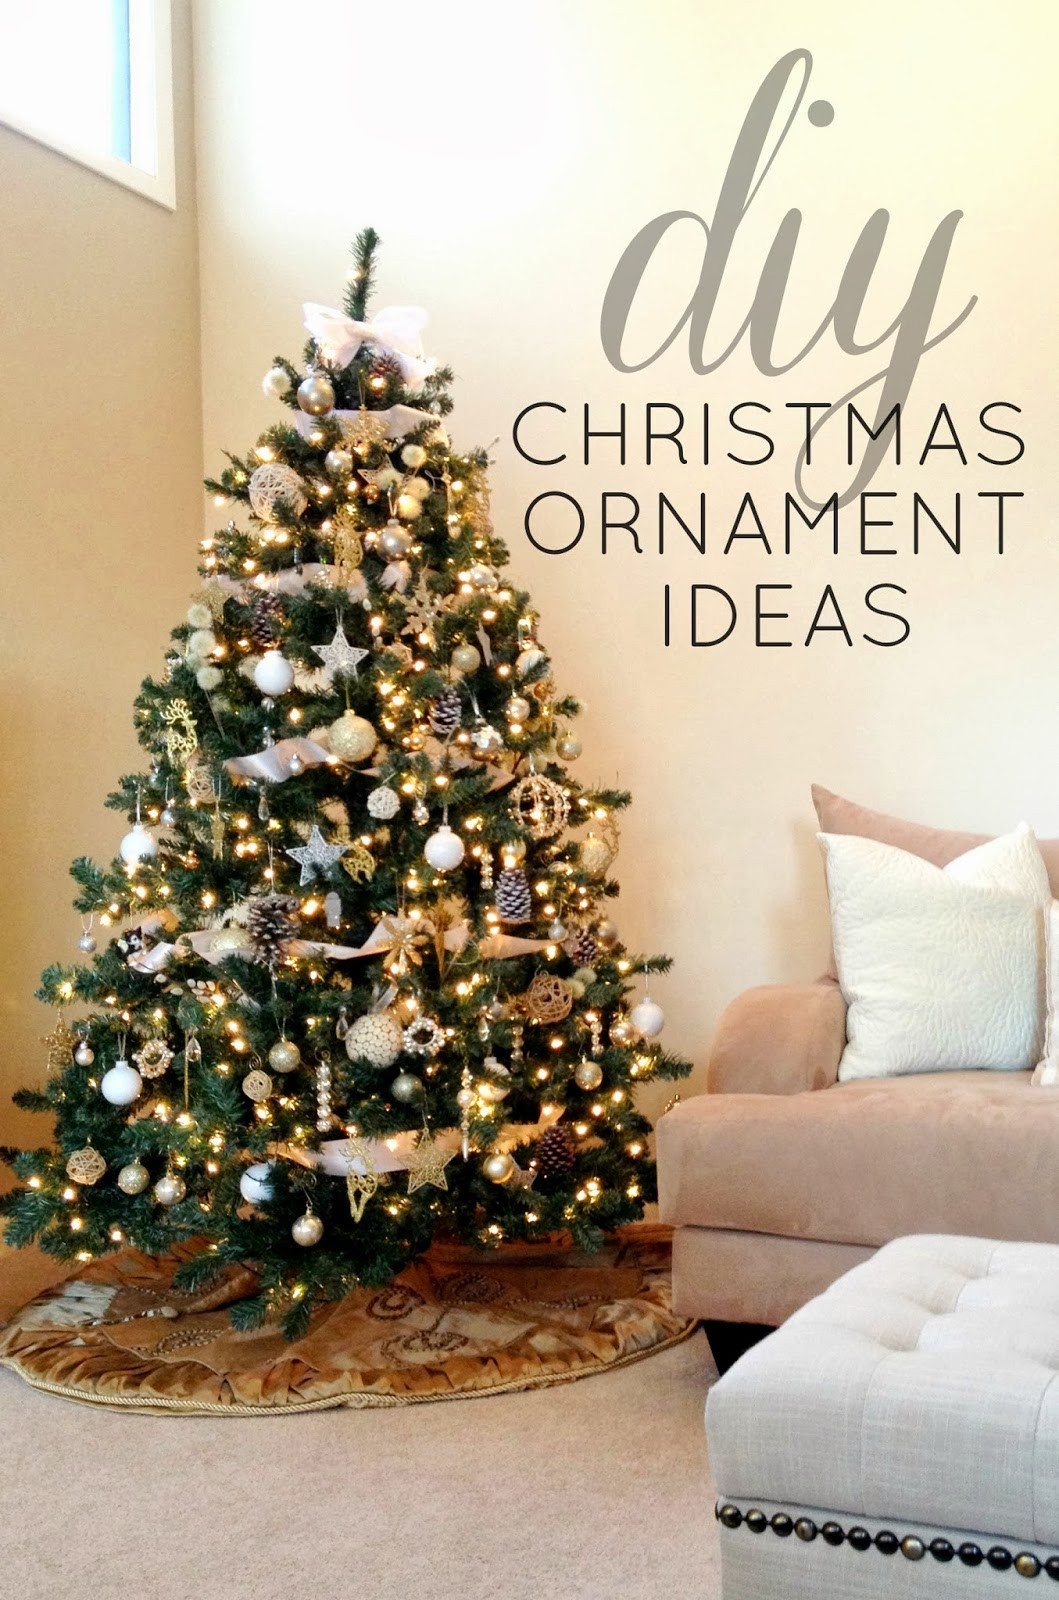 New Christmas Tree Decorations Ideas and Tips to Decorate It Diy Xmas ornaments Of Amazing 50 Ideas Diy Xmas ornaments